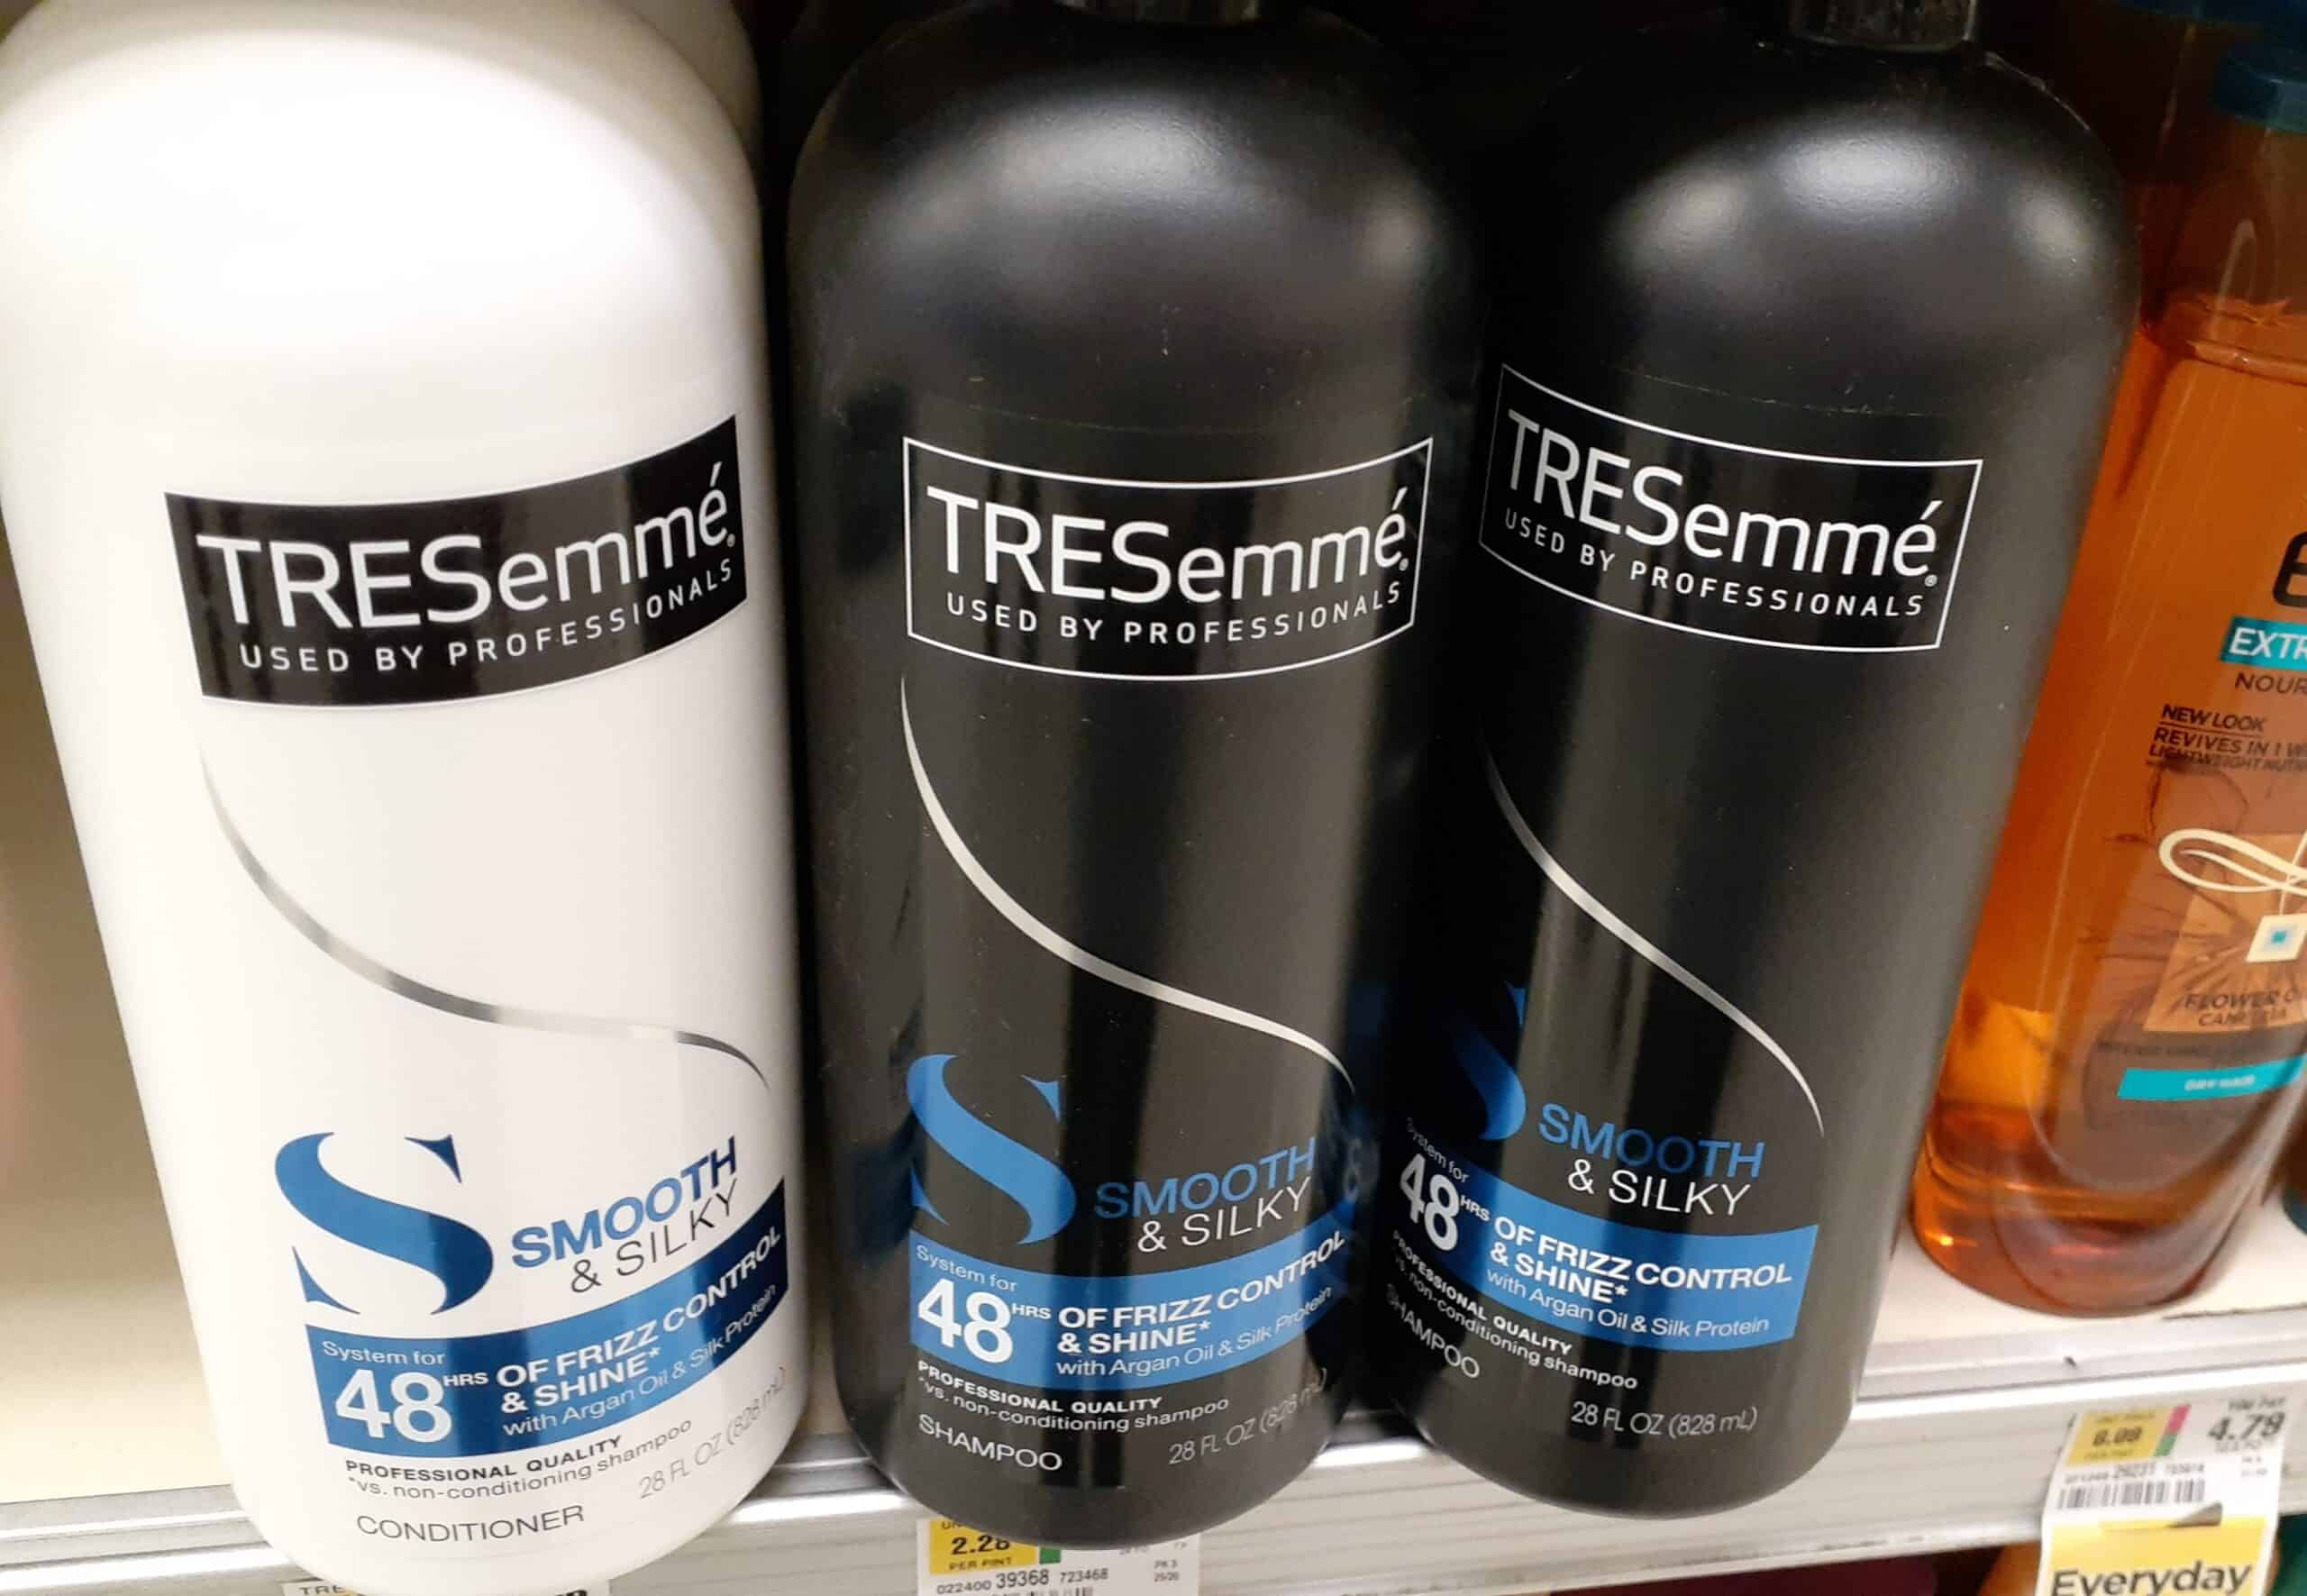 Tresemme Shampoo or Conditioner at Shoprite